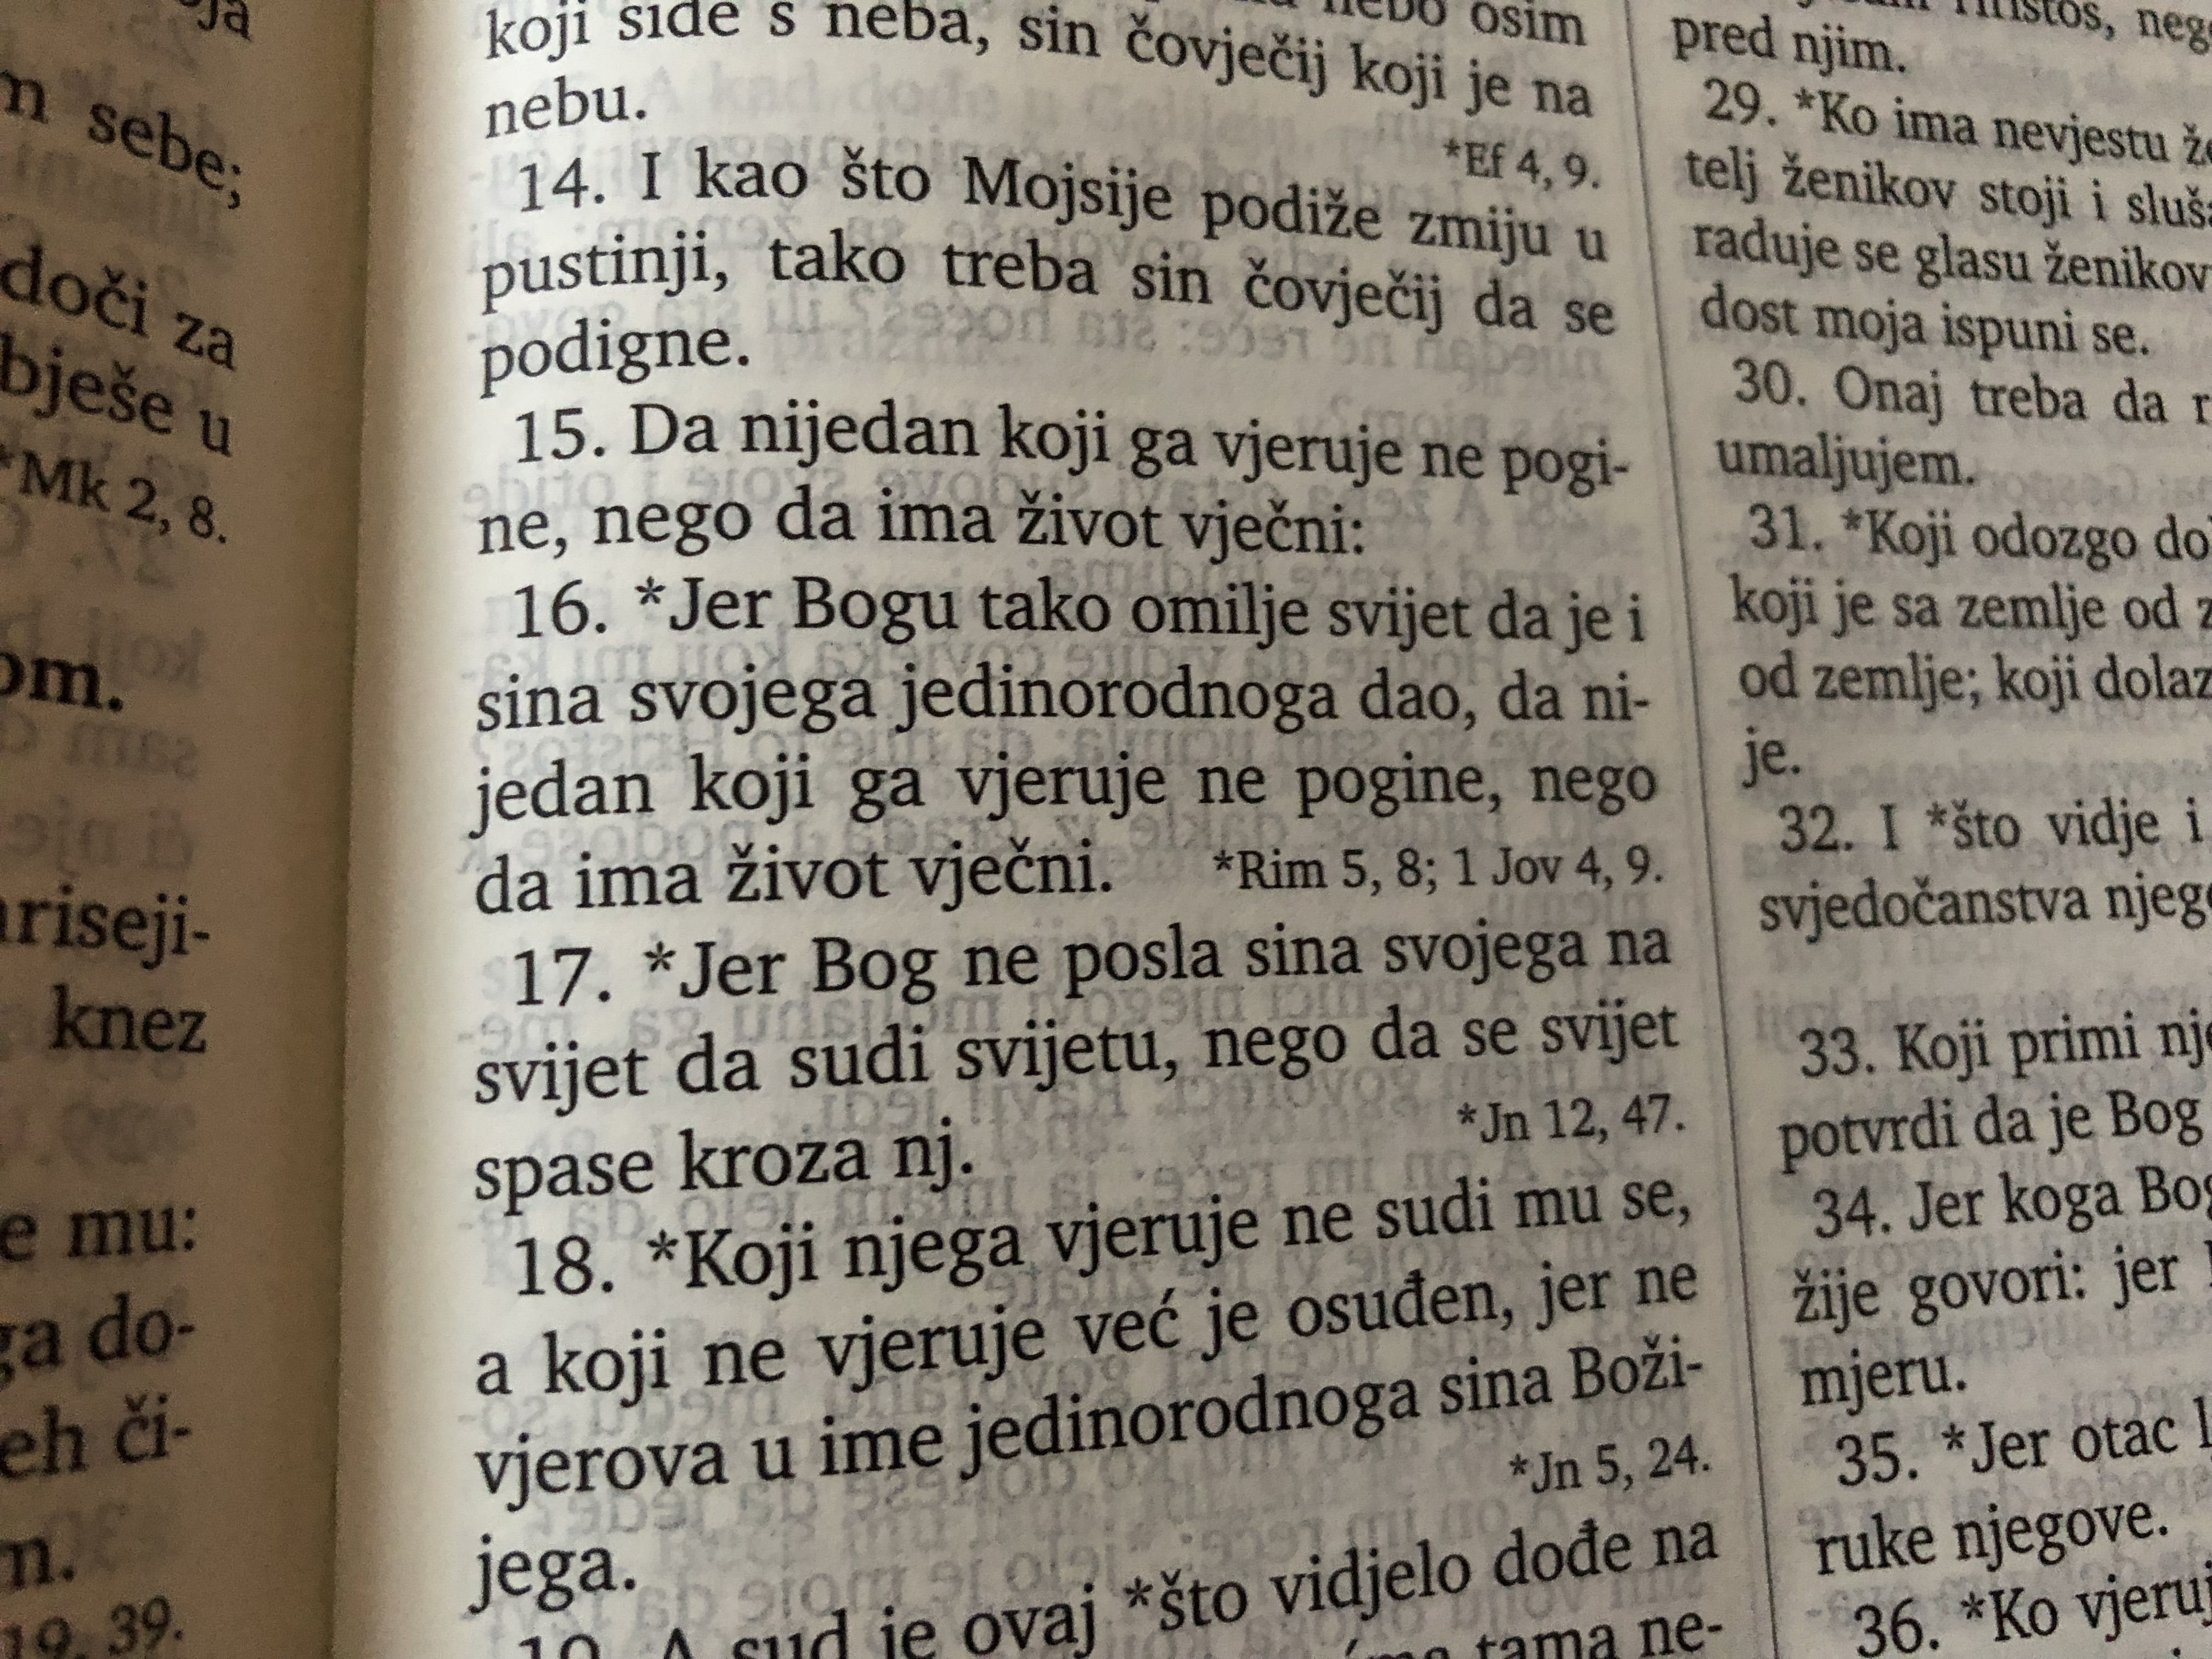 serbian-bible-with-golden-edges-and-thumb-index-latin-12-.jpg